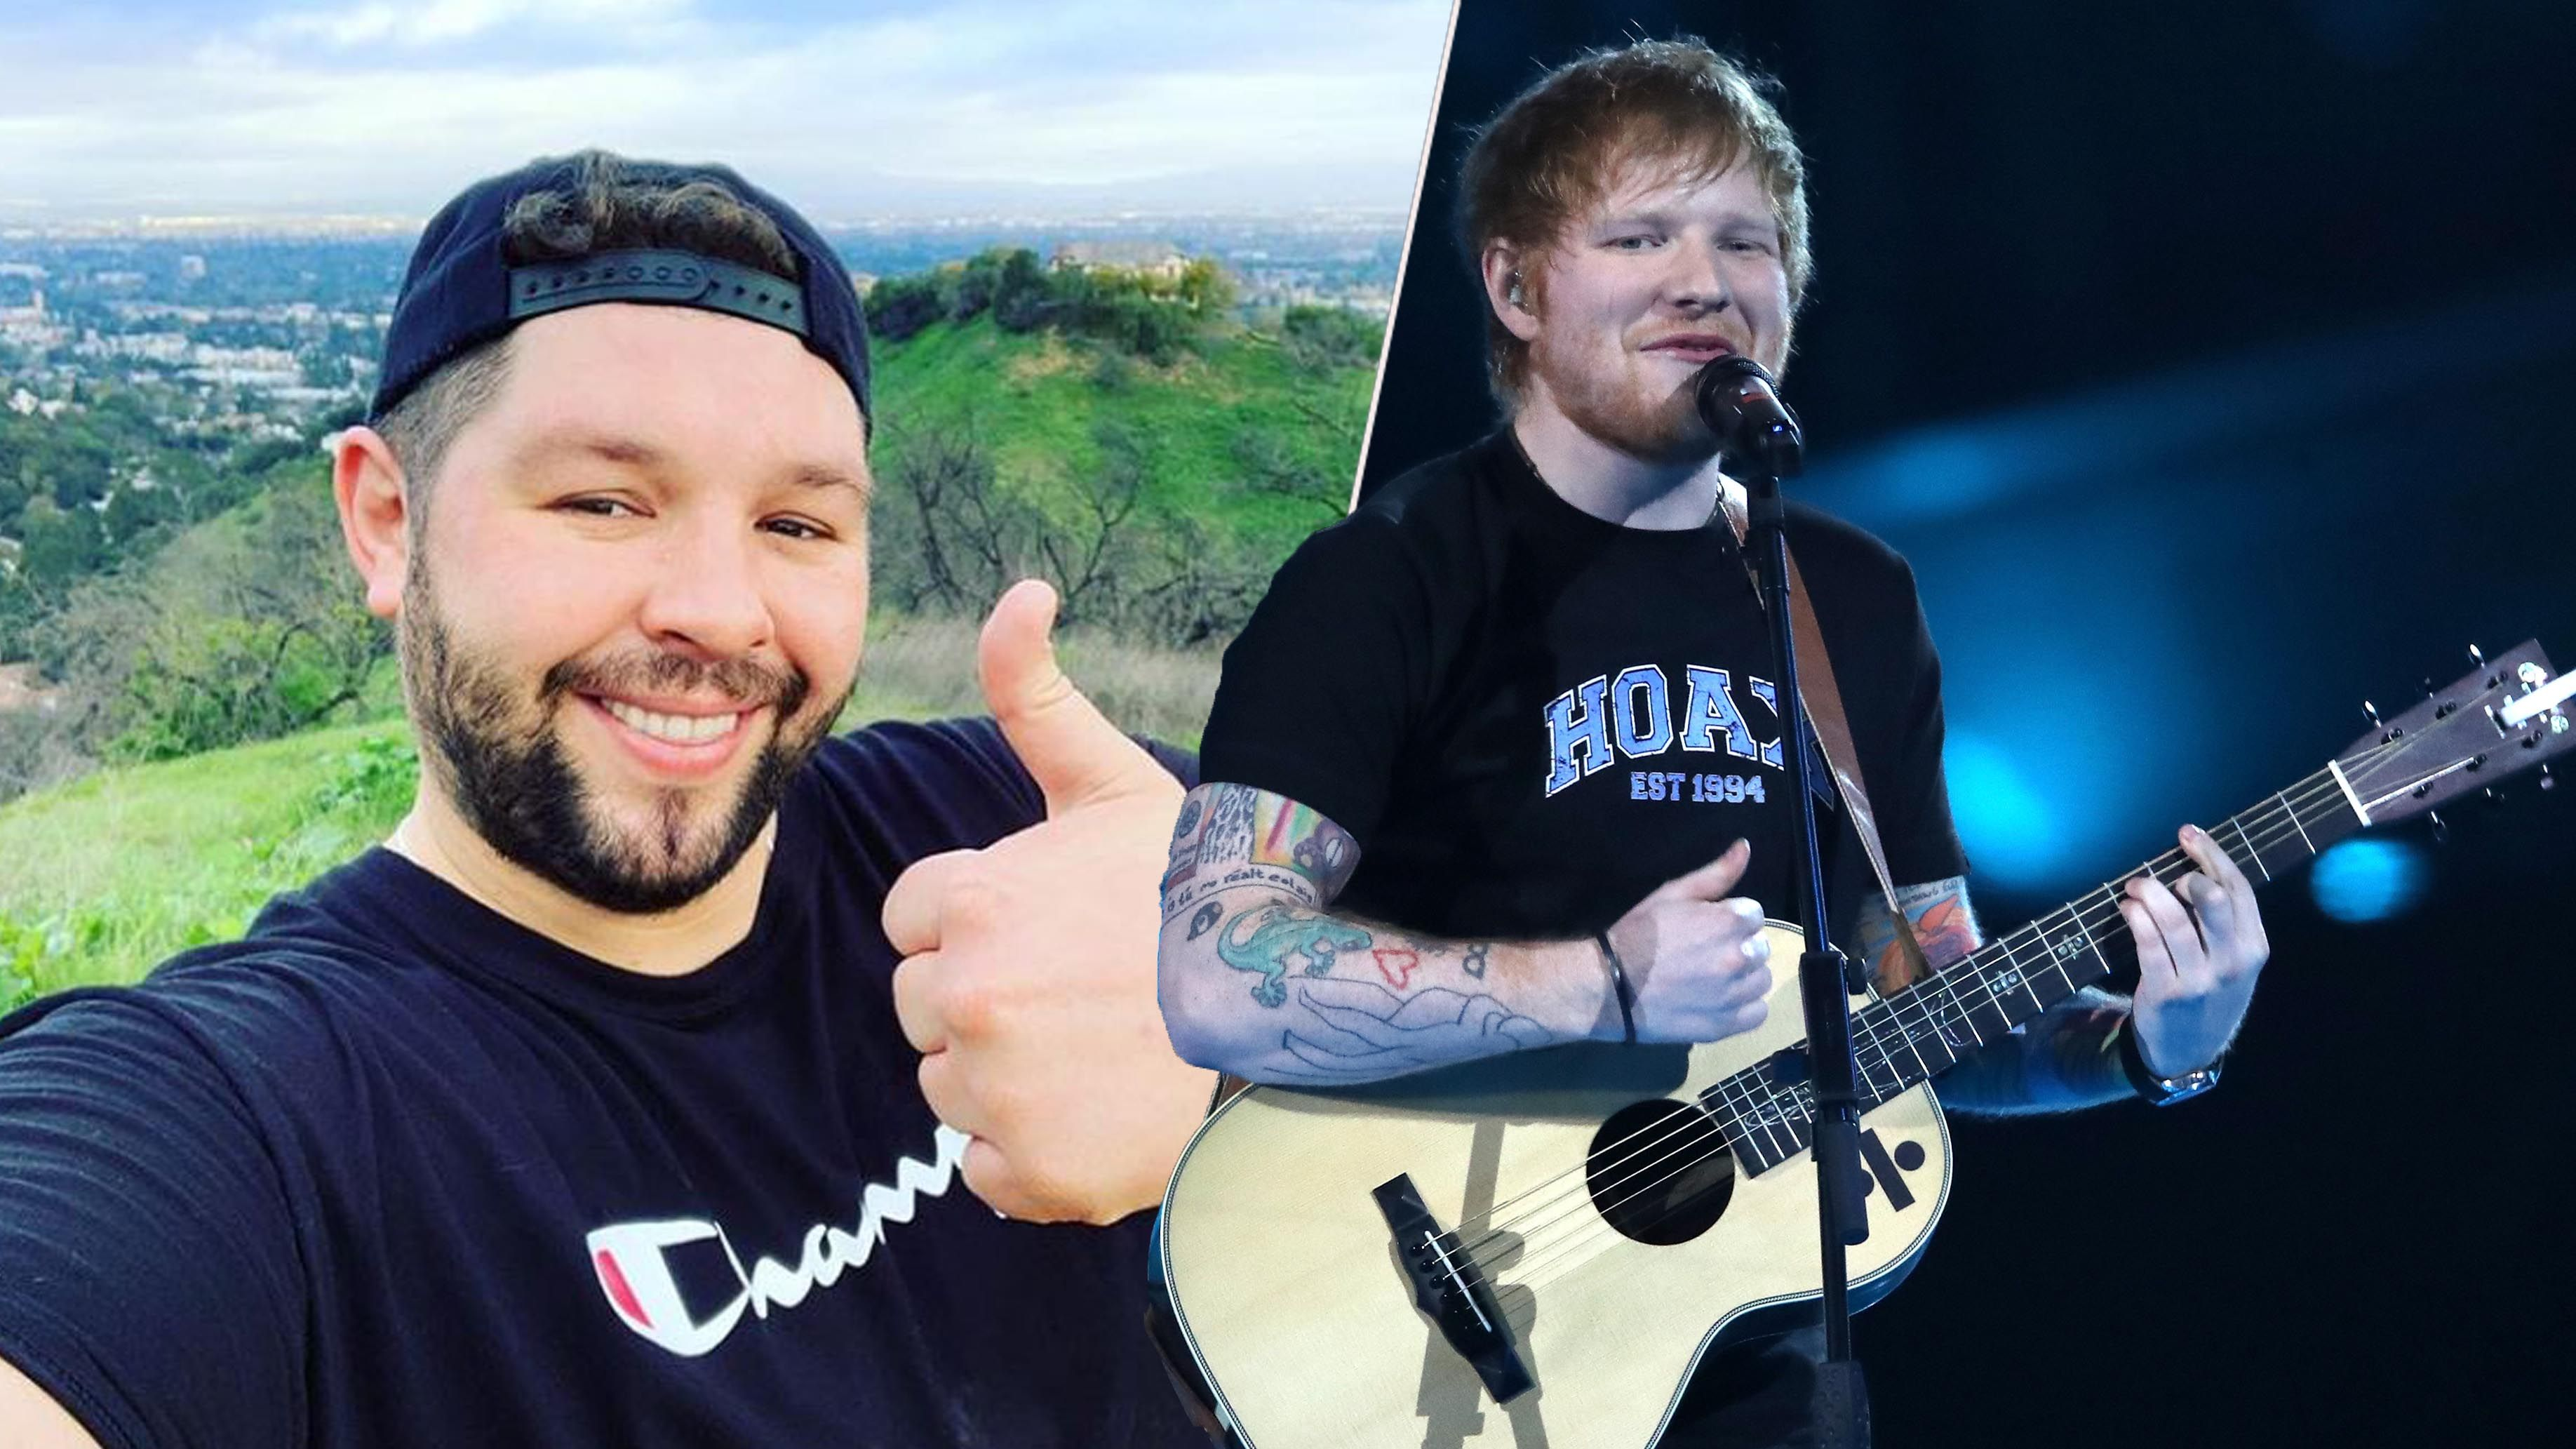 Ed Sheeran's songwriter James Newman is representing the UK at Eurovision